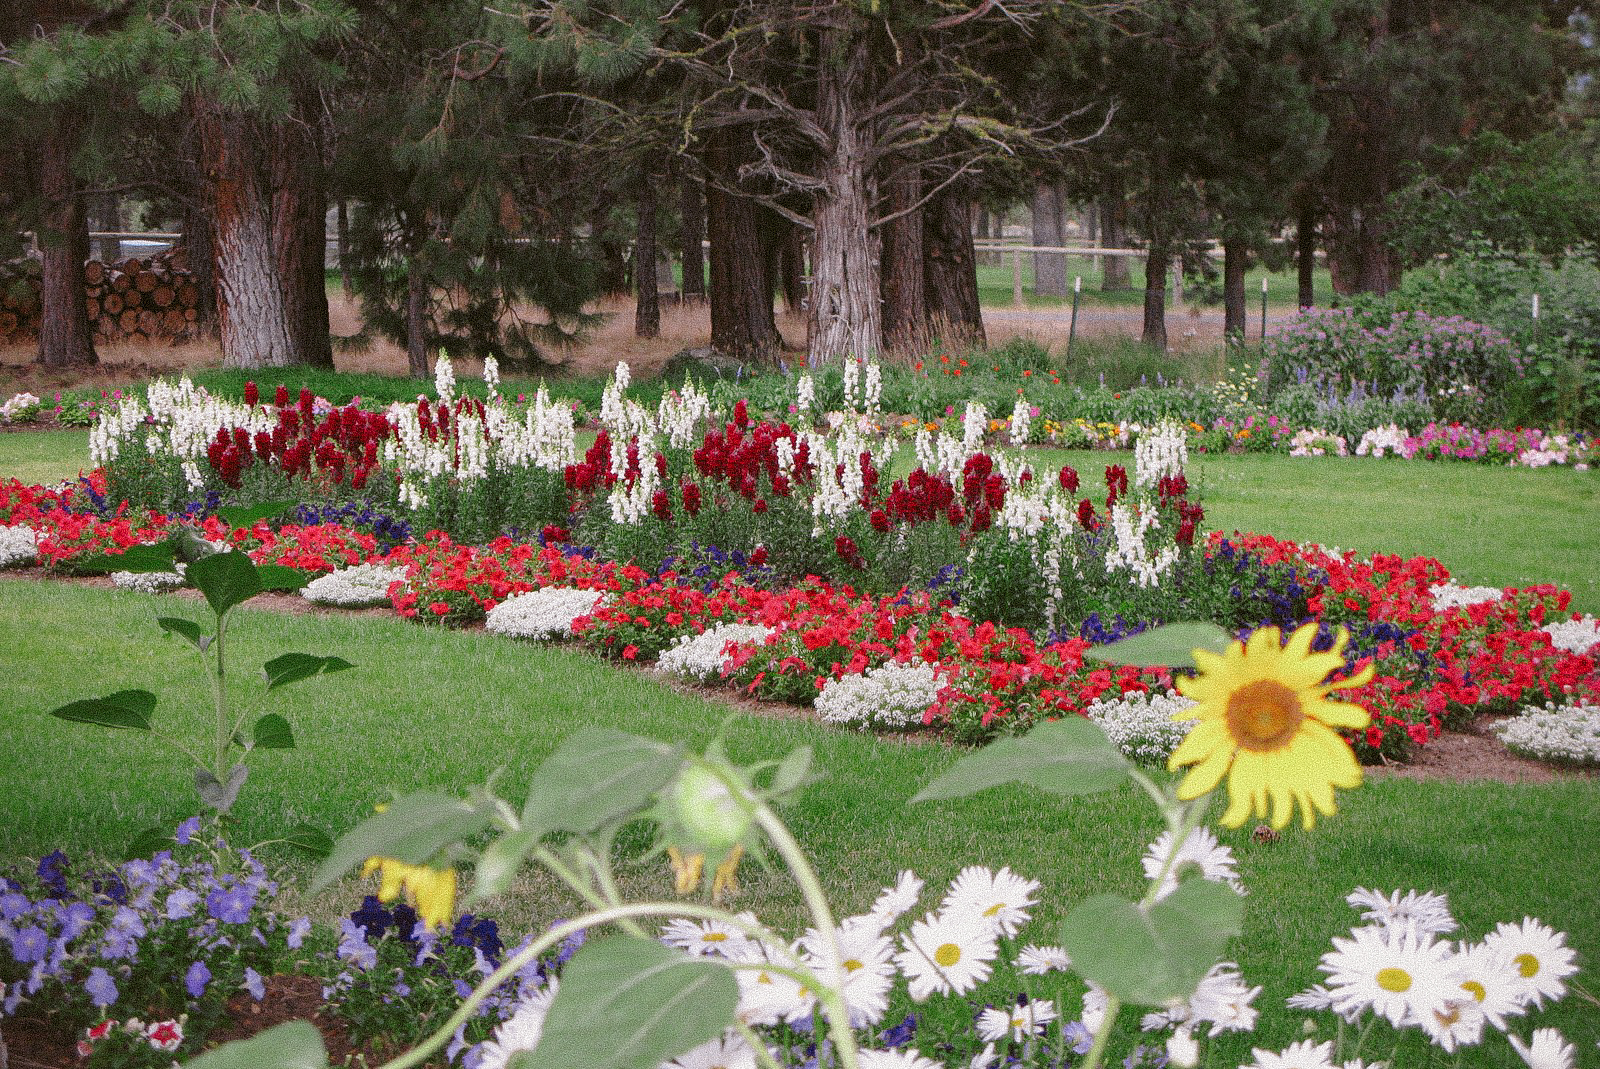 The landscaping on the grounds